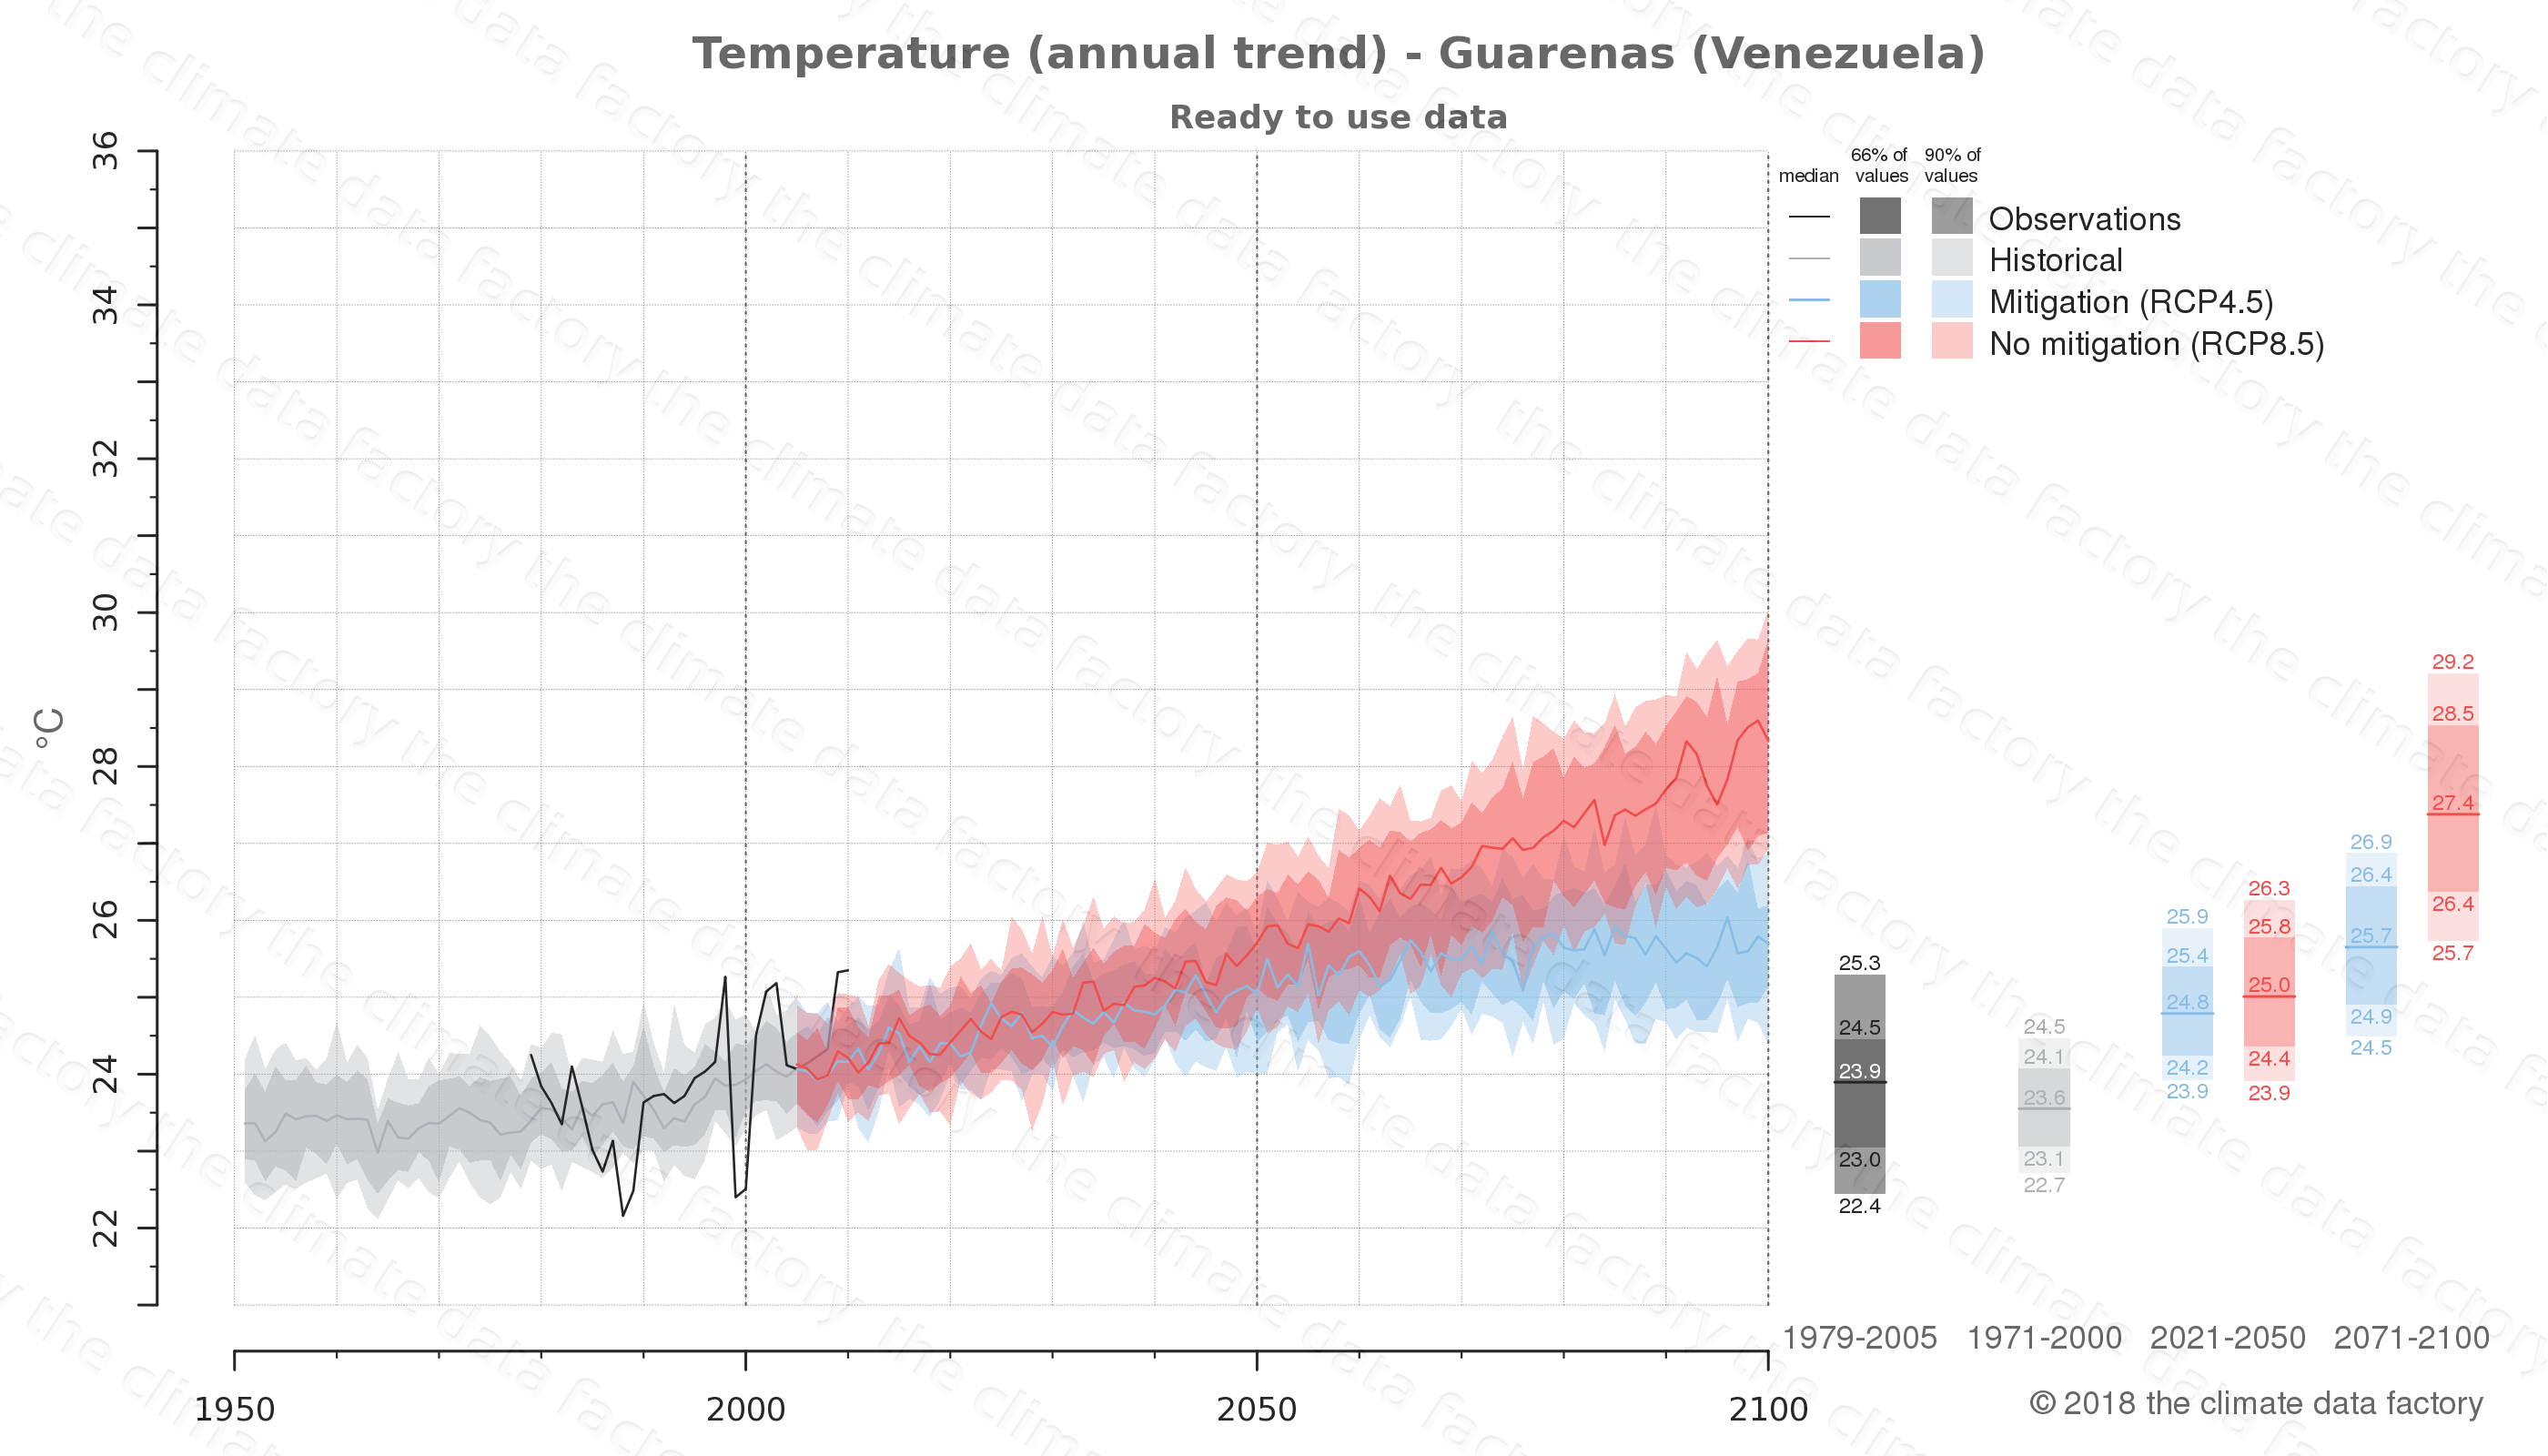 climate change data policy adaptation climate graph city data temperature guarenas venezuela